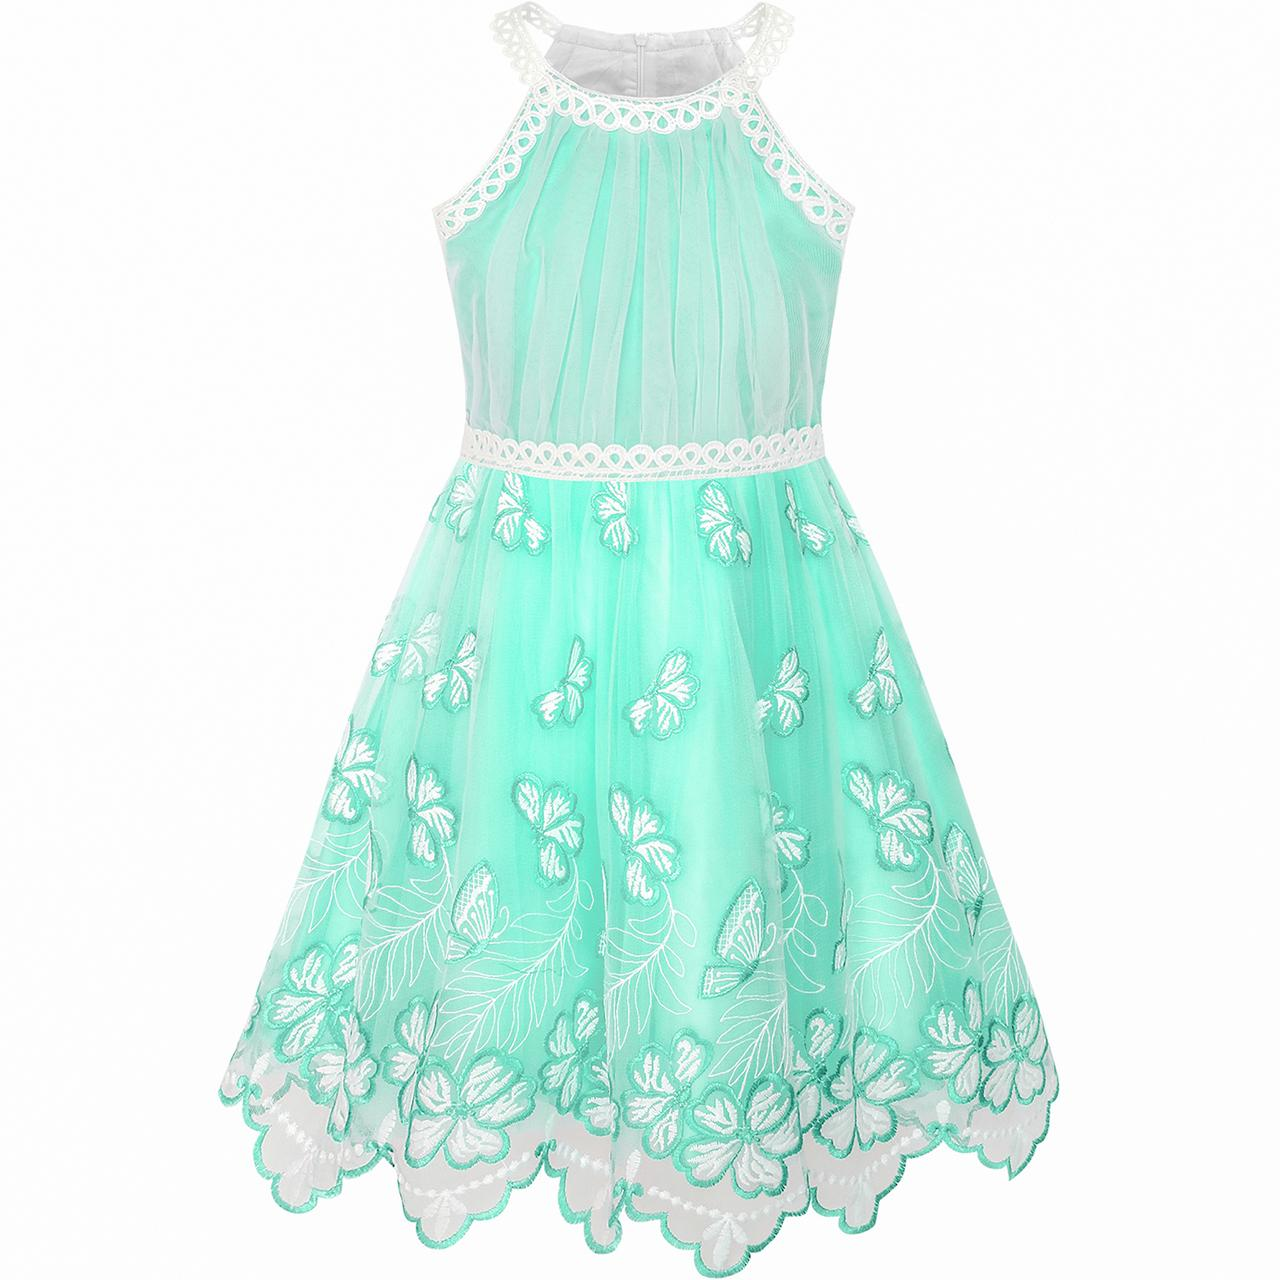 Girls Dress Turquoise Butterfly Embroidered Halter Dress Party 2020 Summer Princess Wedding Dresses Size 5-12 Carnival Vestidos